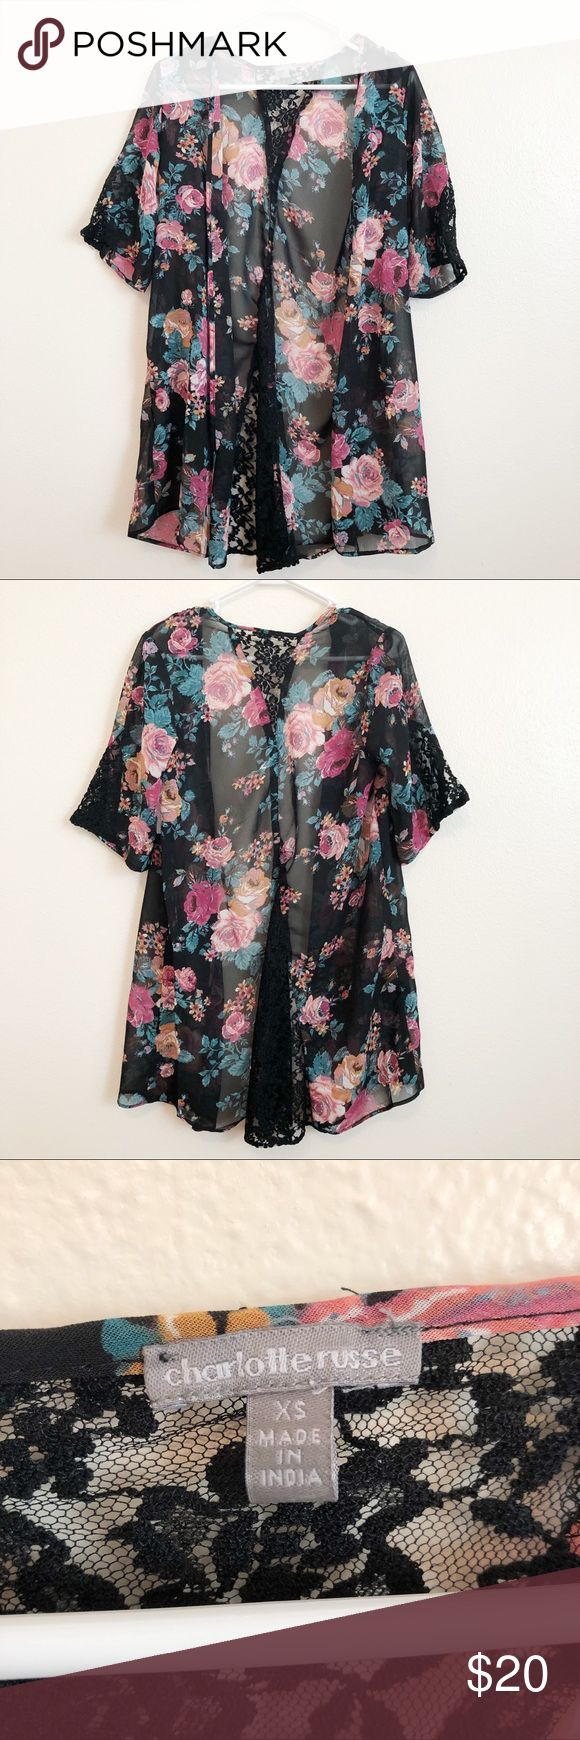 Floral lace inset kimono A sheer floral lace inset kimono in a size XS from Charlotte Russe. Has wide dolman sleeves and a crotchet lace inset design. This is brand new and has never been worn! Charlotte Russe Tops Blouses